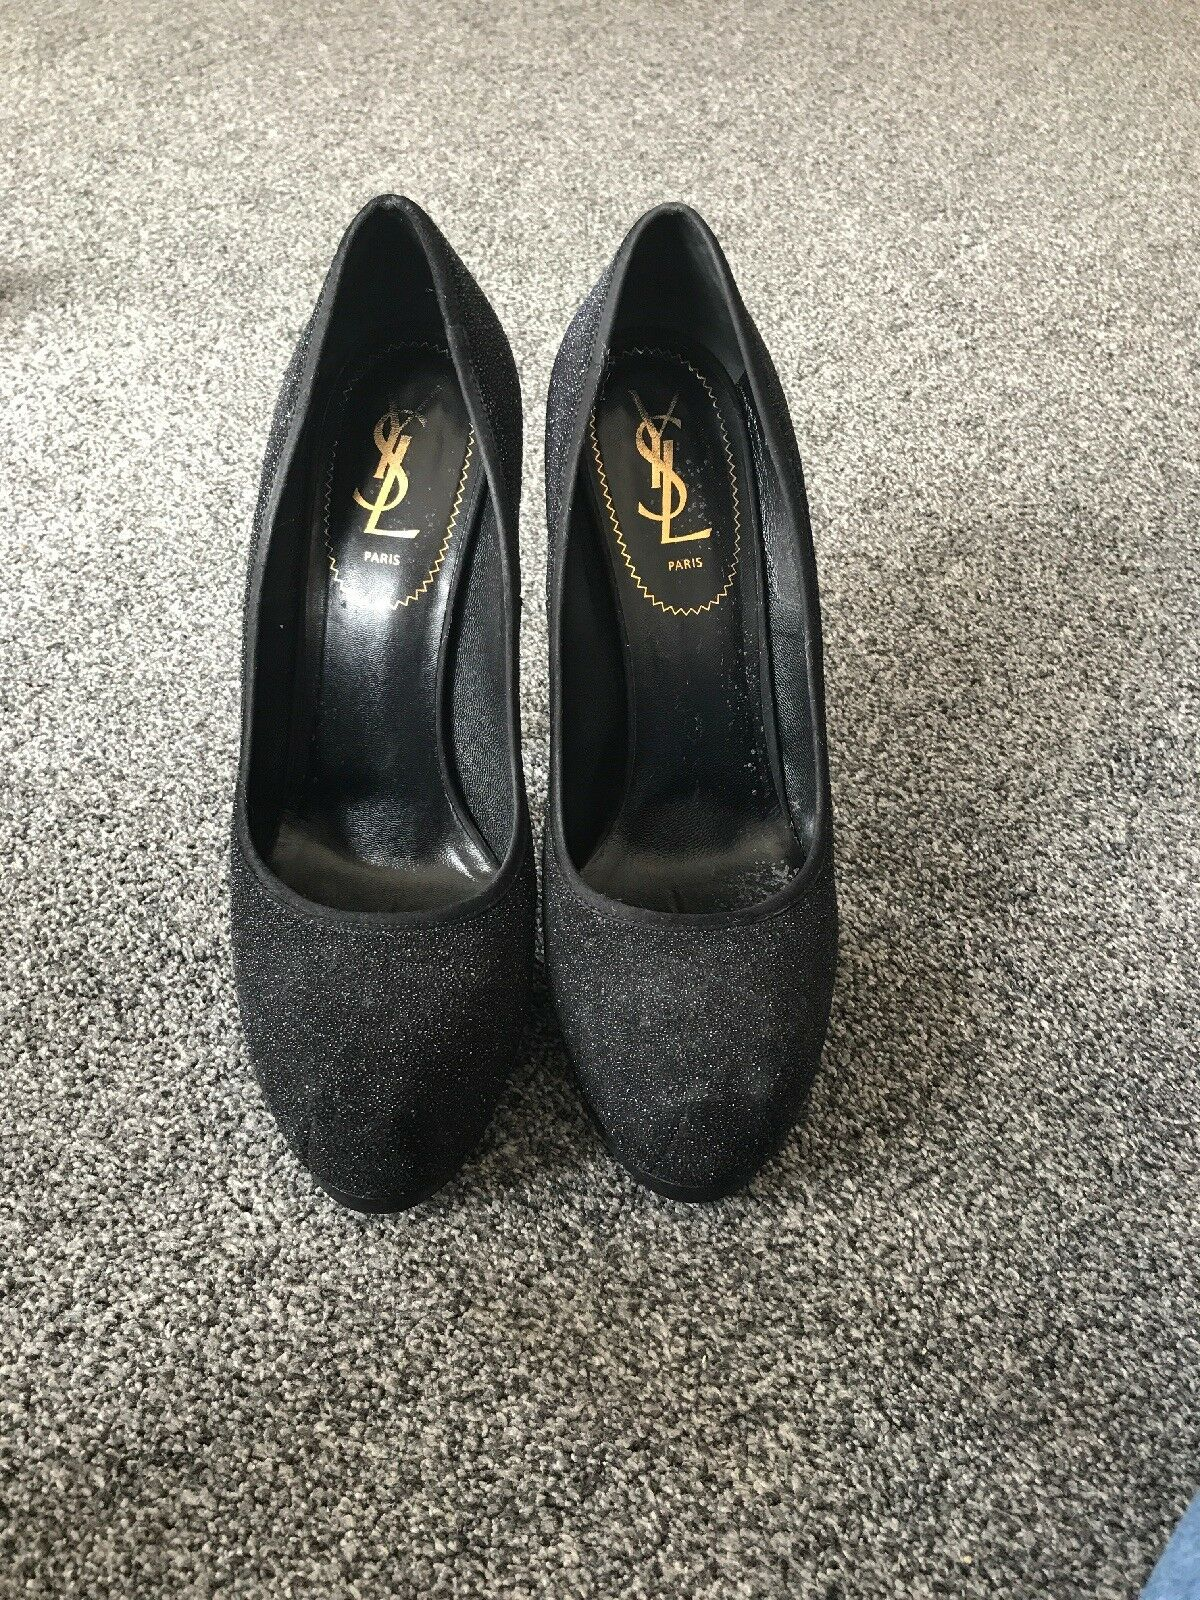 Yves SAINT LAURENT tribtoo POMPE 38.5 EU